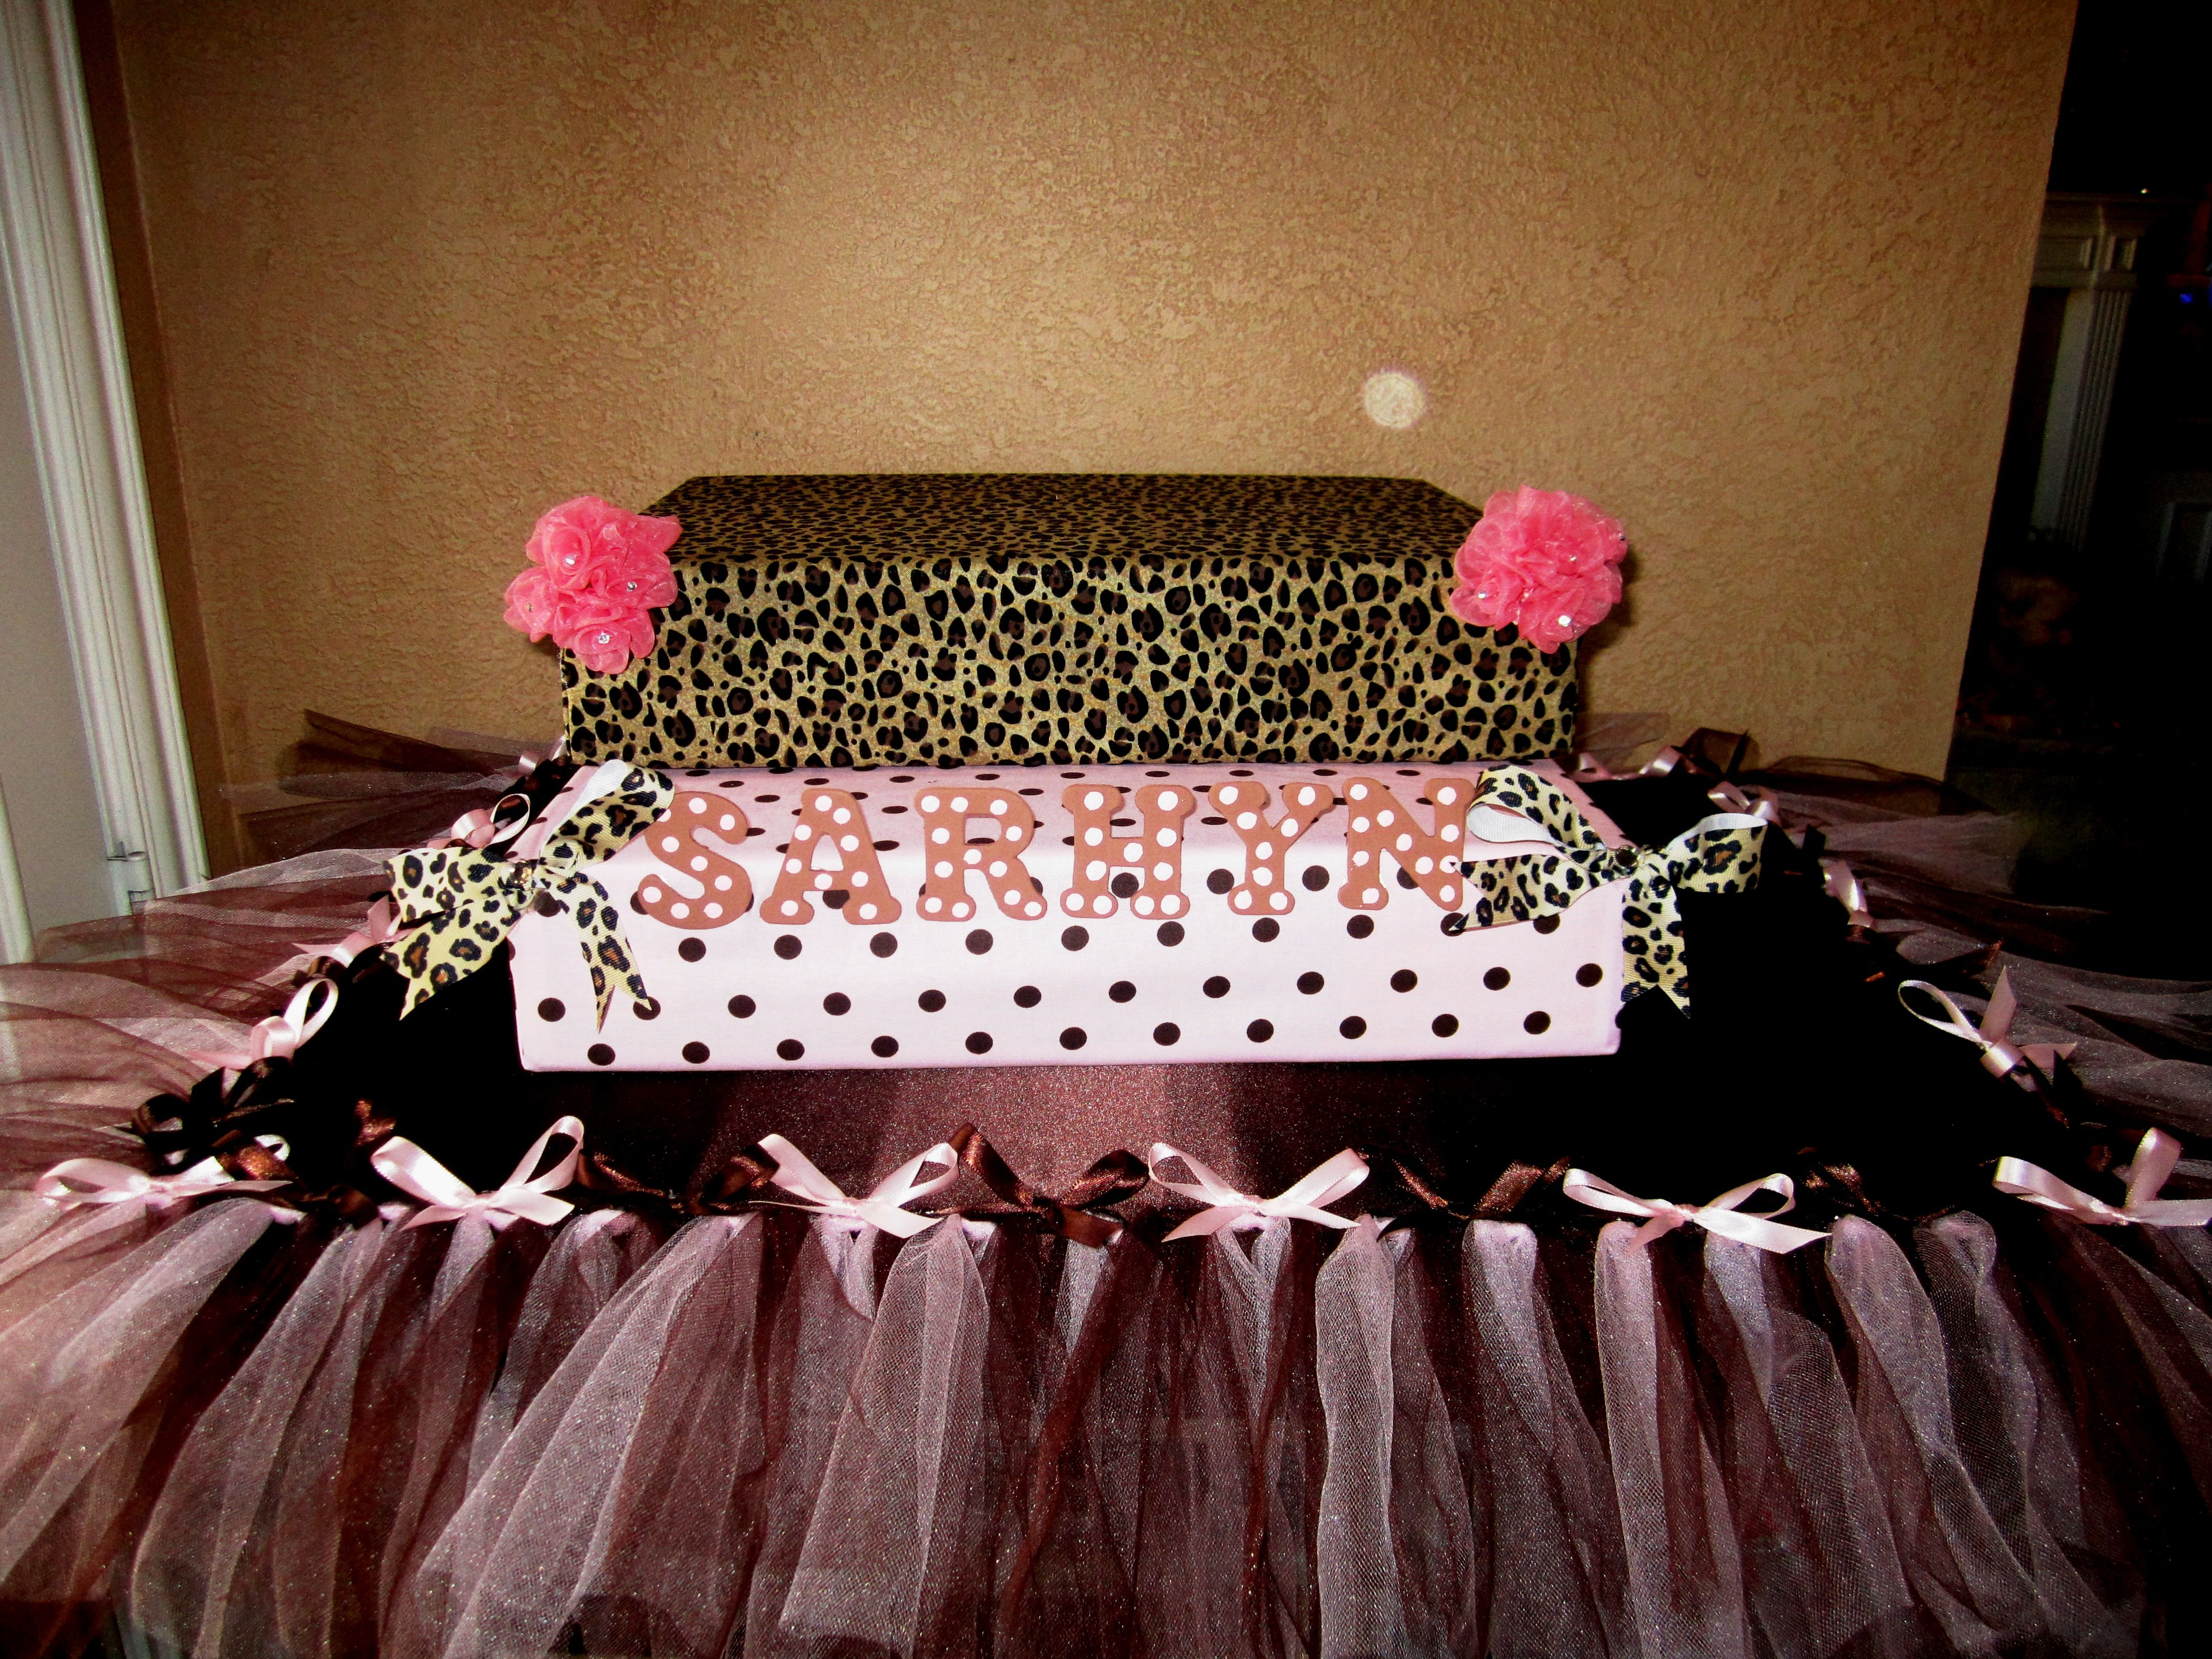 Pin By Tanisha Frazer On Fabracadabra Designs Creative Baby Shower Baby Shower Princess Cheetah Party